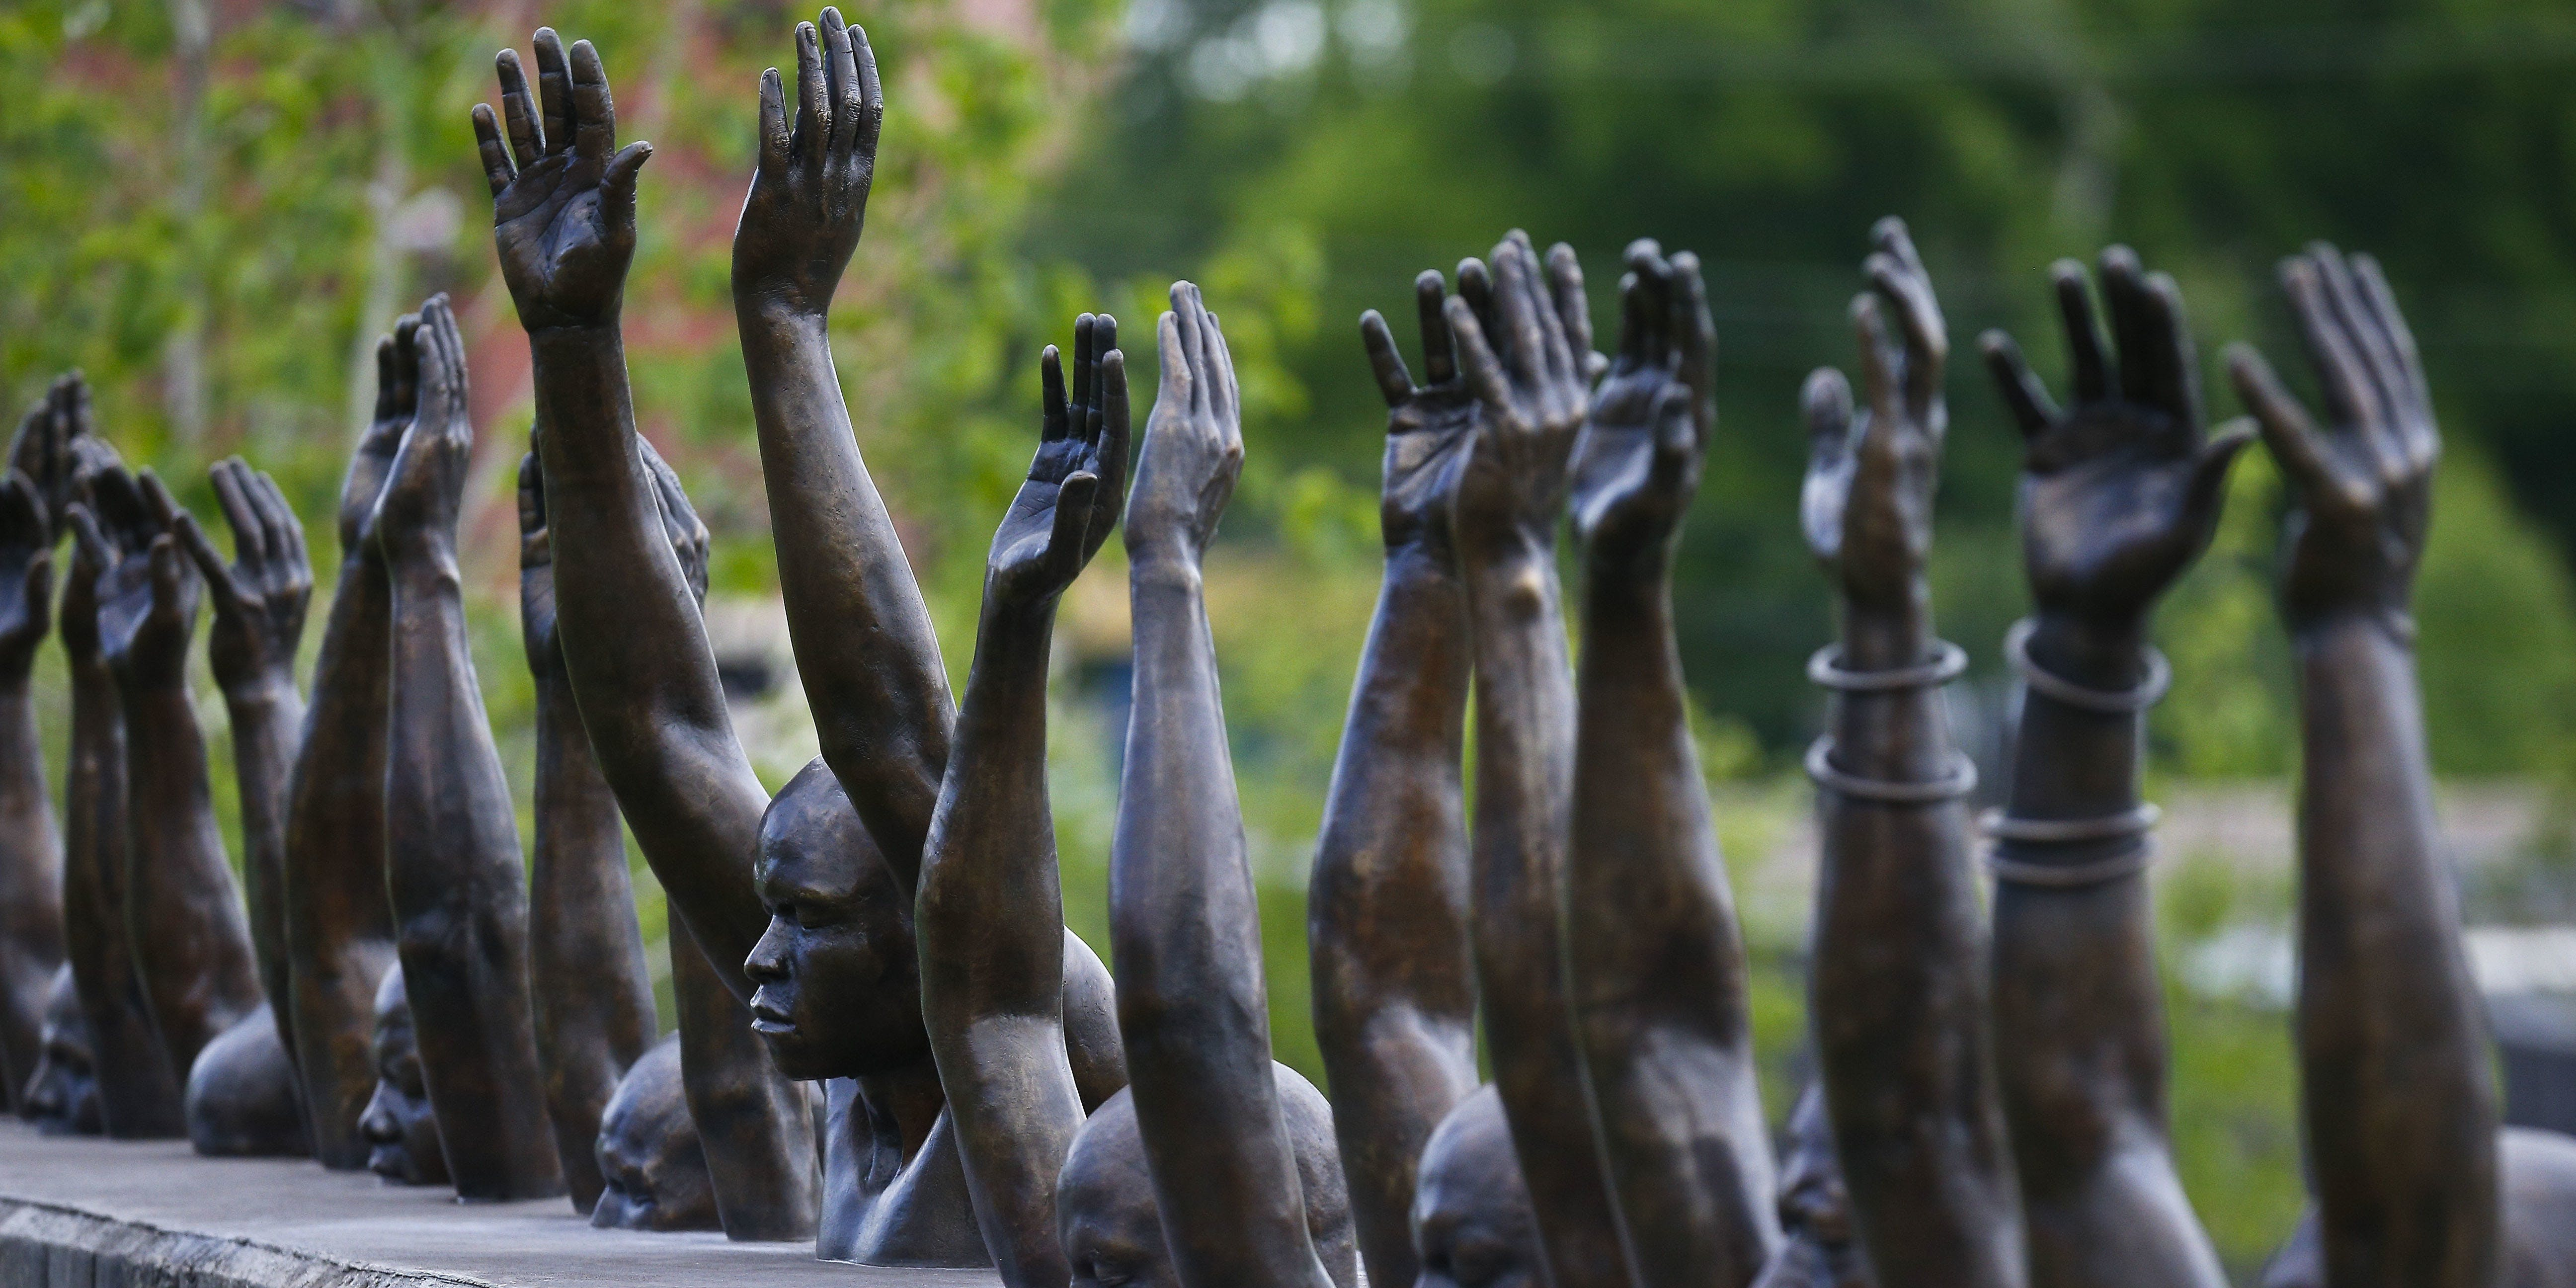 Alabama's Lynching Memorial and the Legacy of Racial Terror in the South